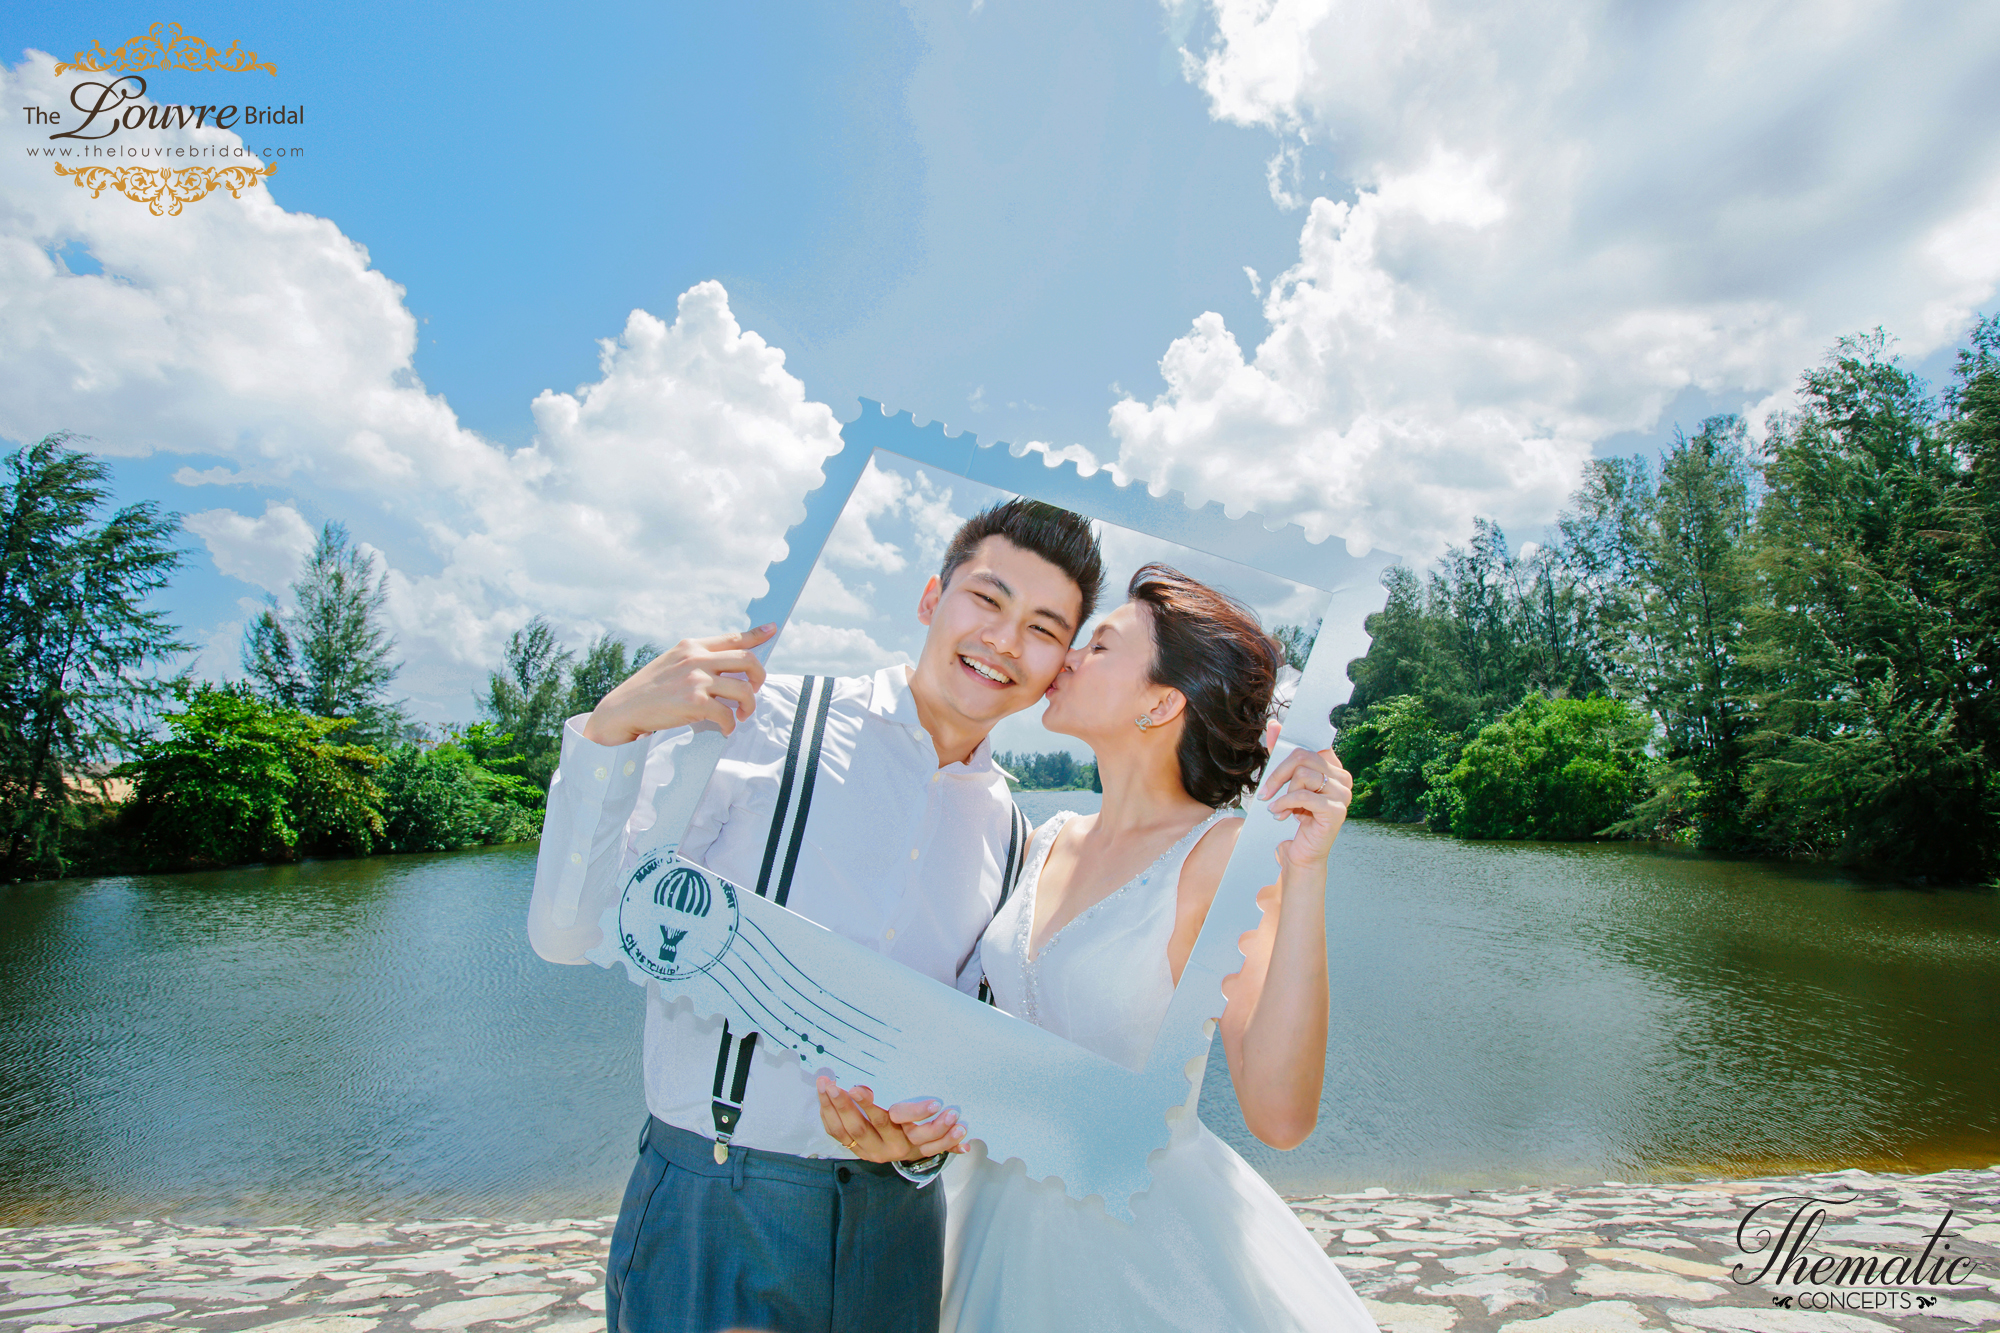 Pre Wedding Gifts: Styled Wedding Photoshoot-Travel Theme For Your Singapore